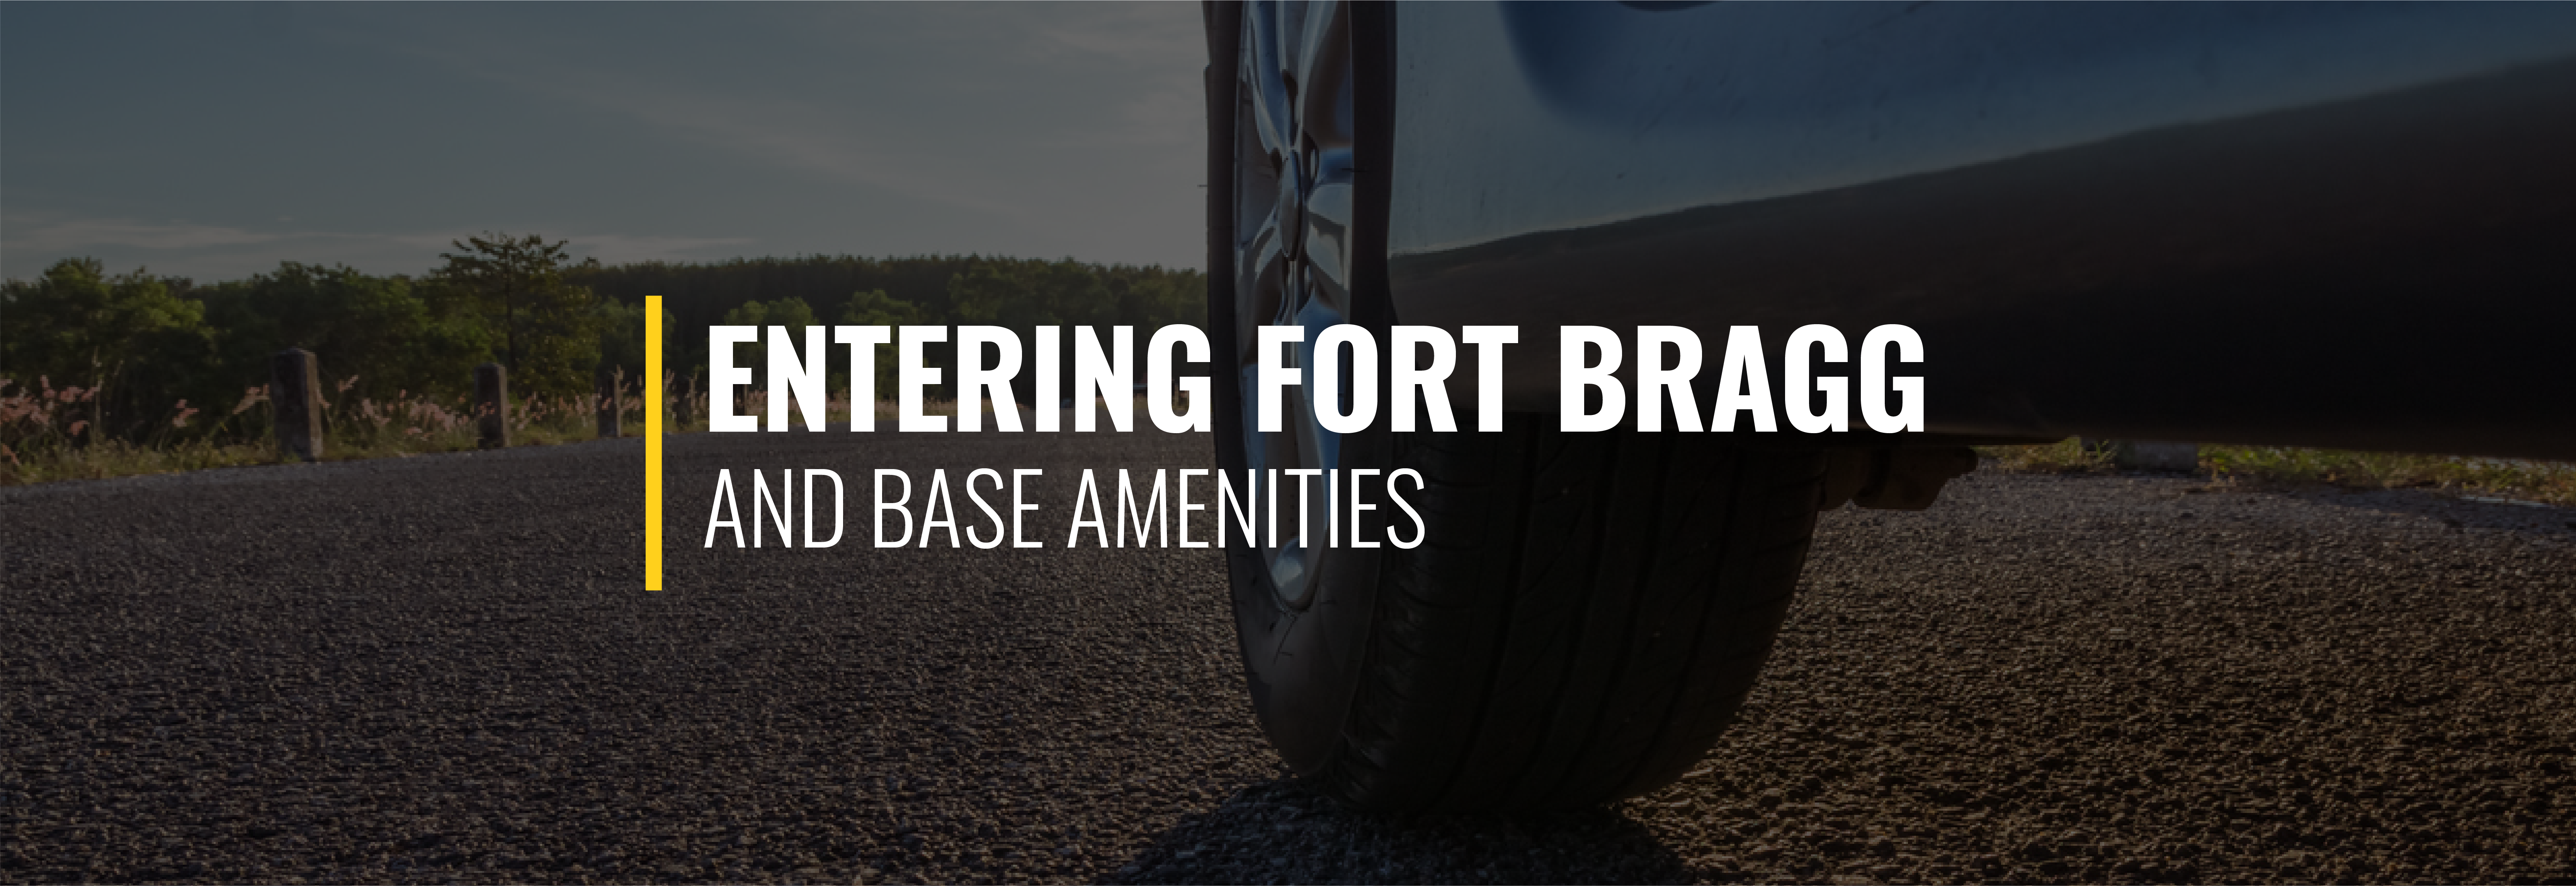 Entering Fort Bragg and Base Amenities